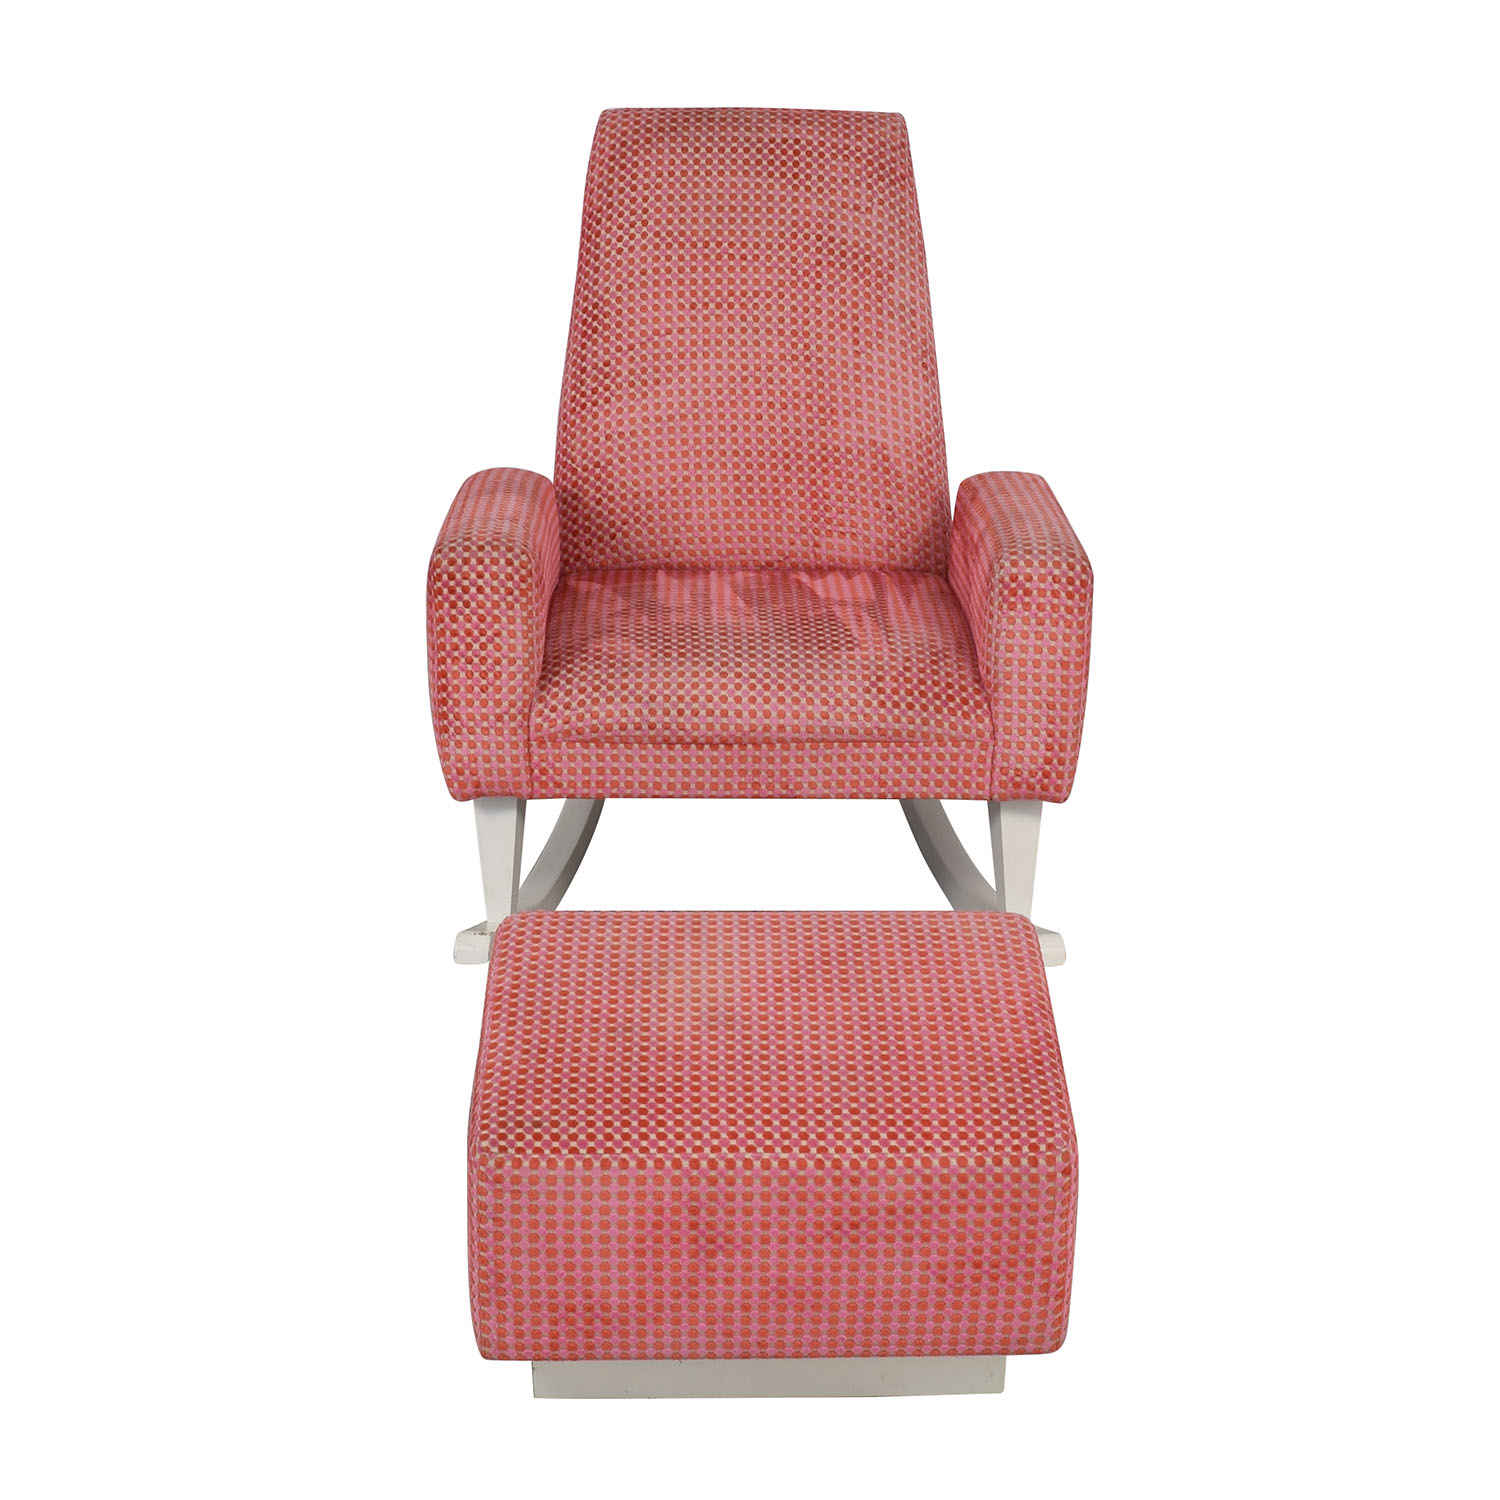 Furniture Masters Furniture Masters Pink Chair with Ottoman for sale